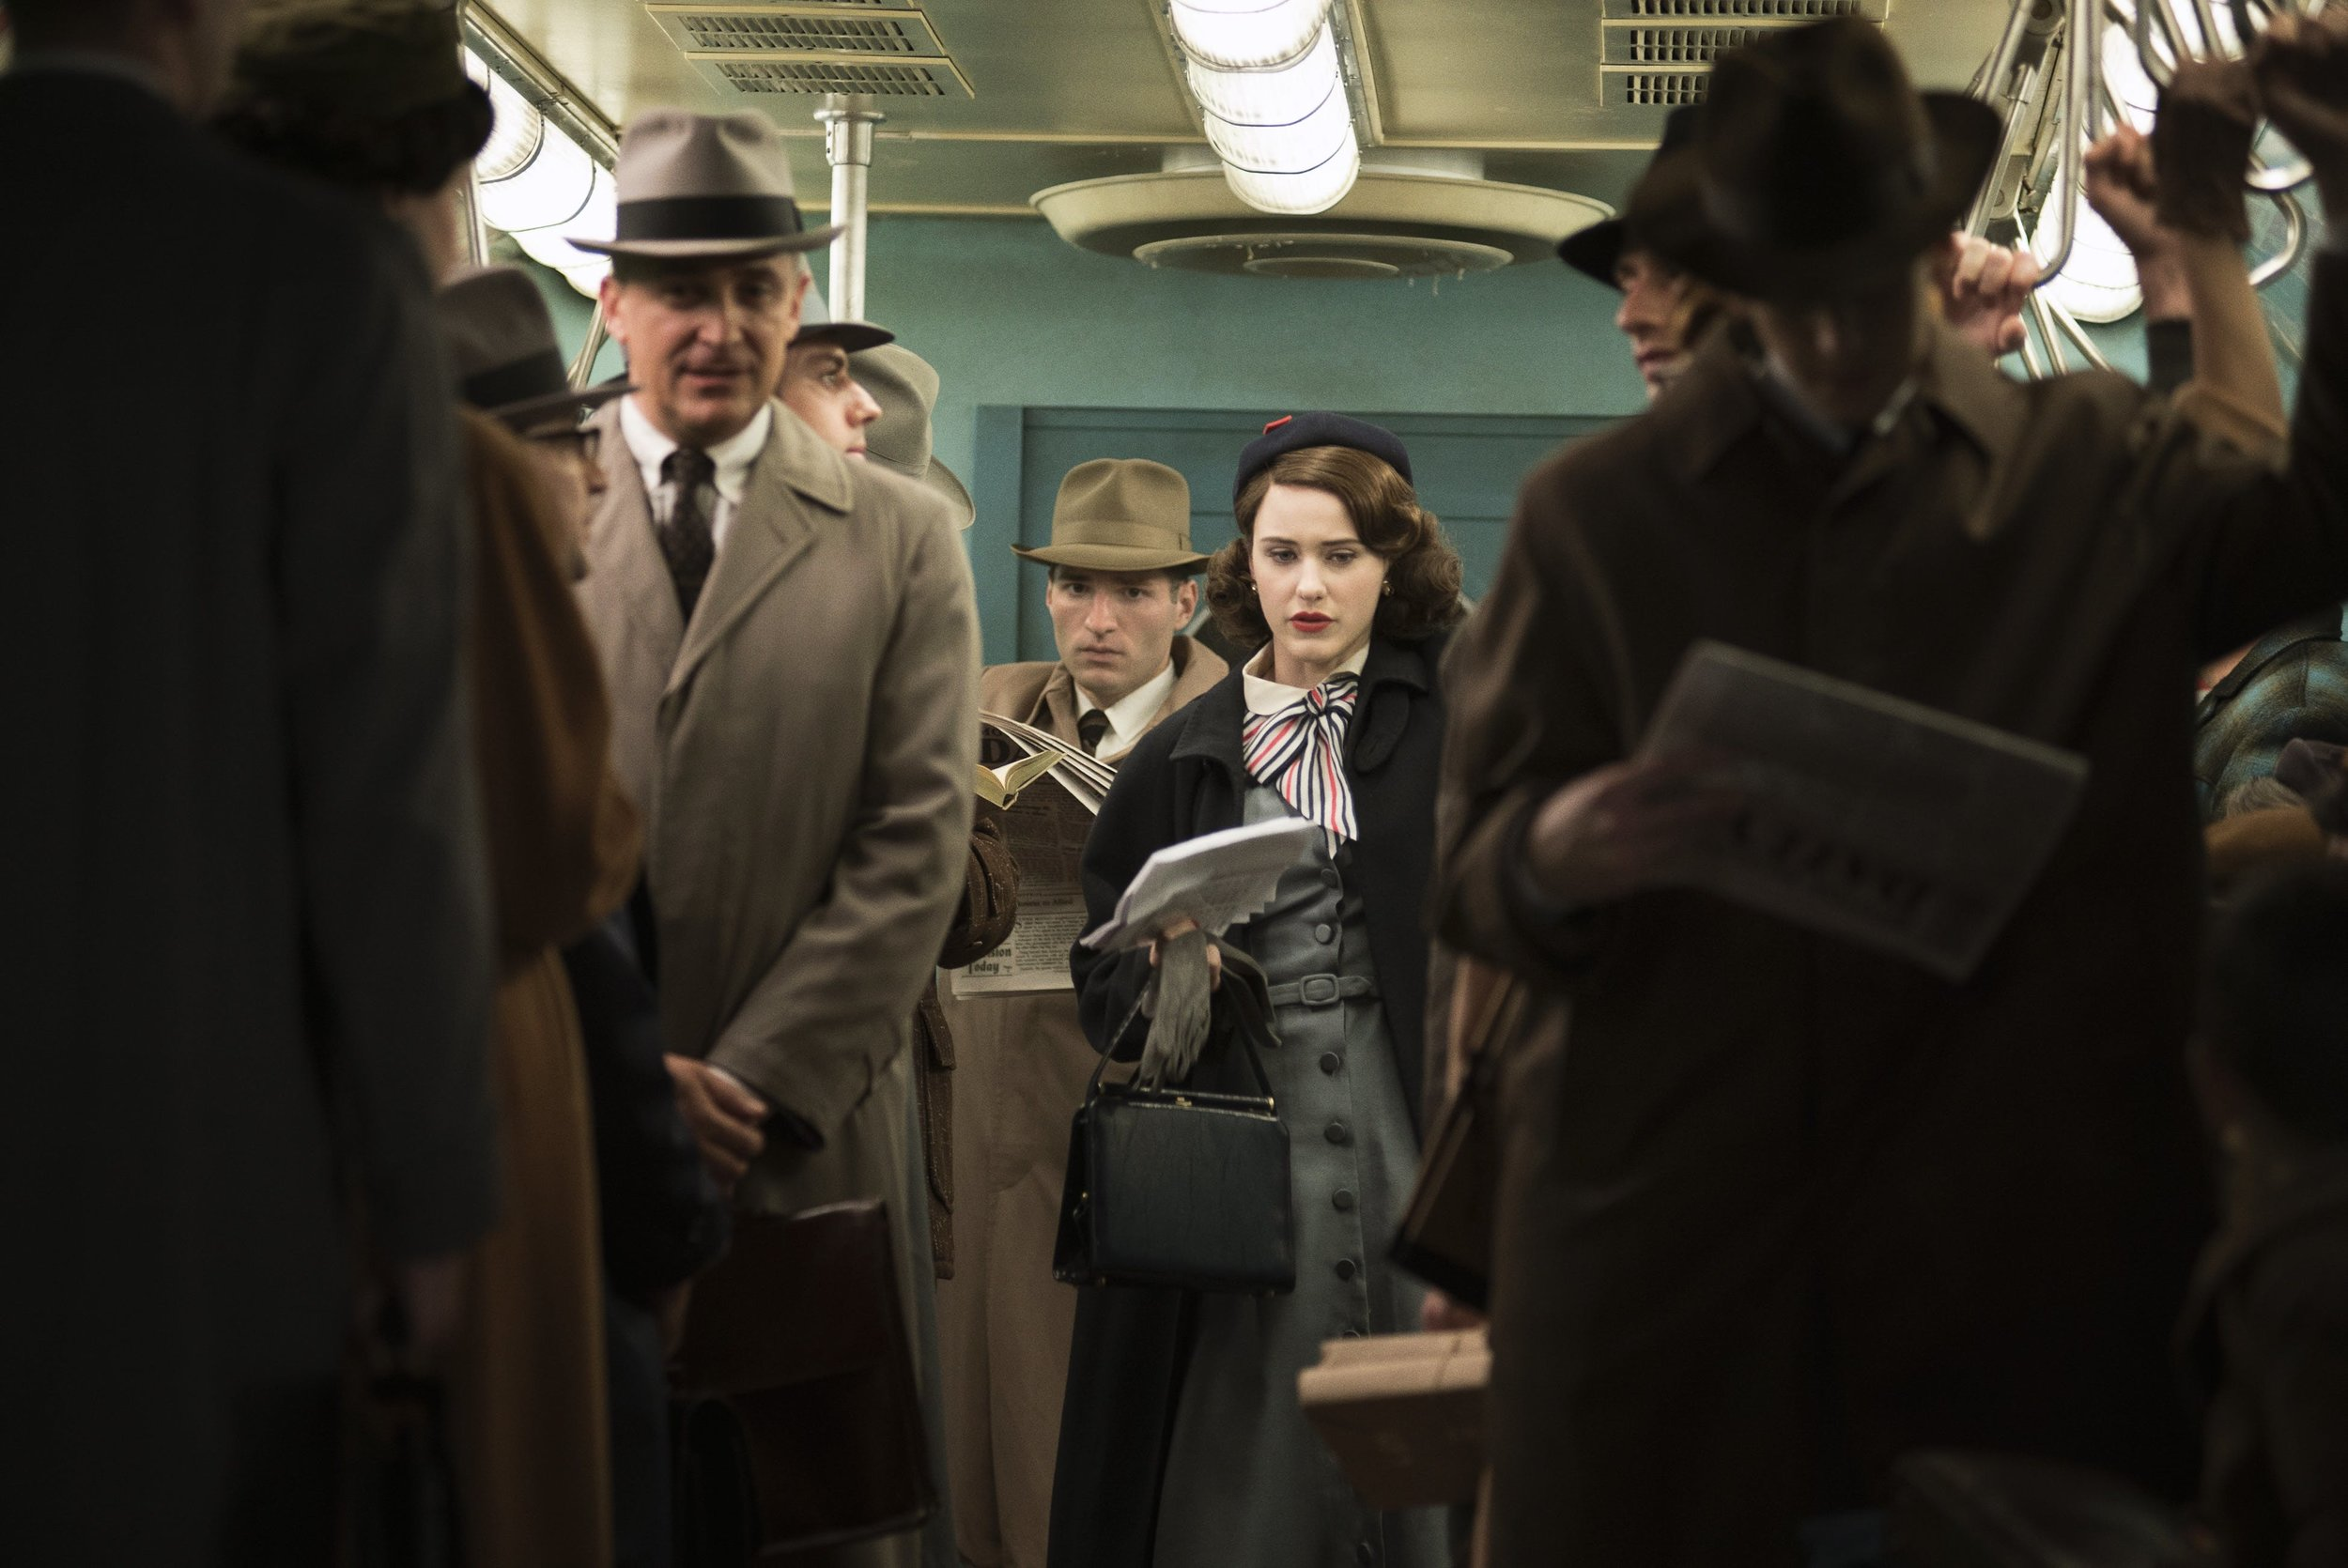 Photography: The Mavelous Mrs. Maisel